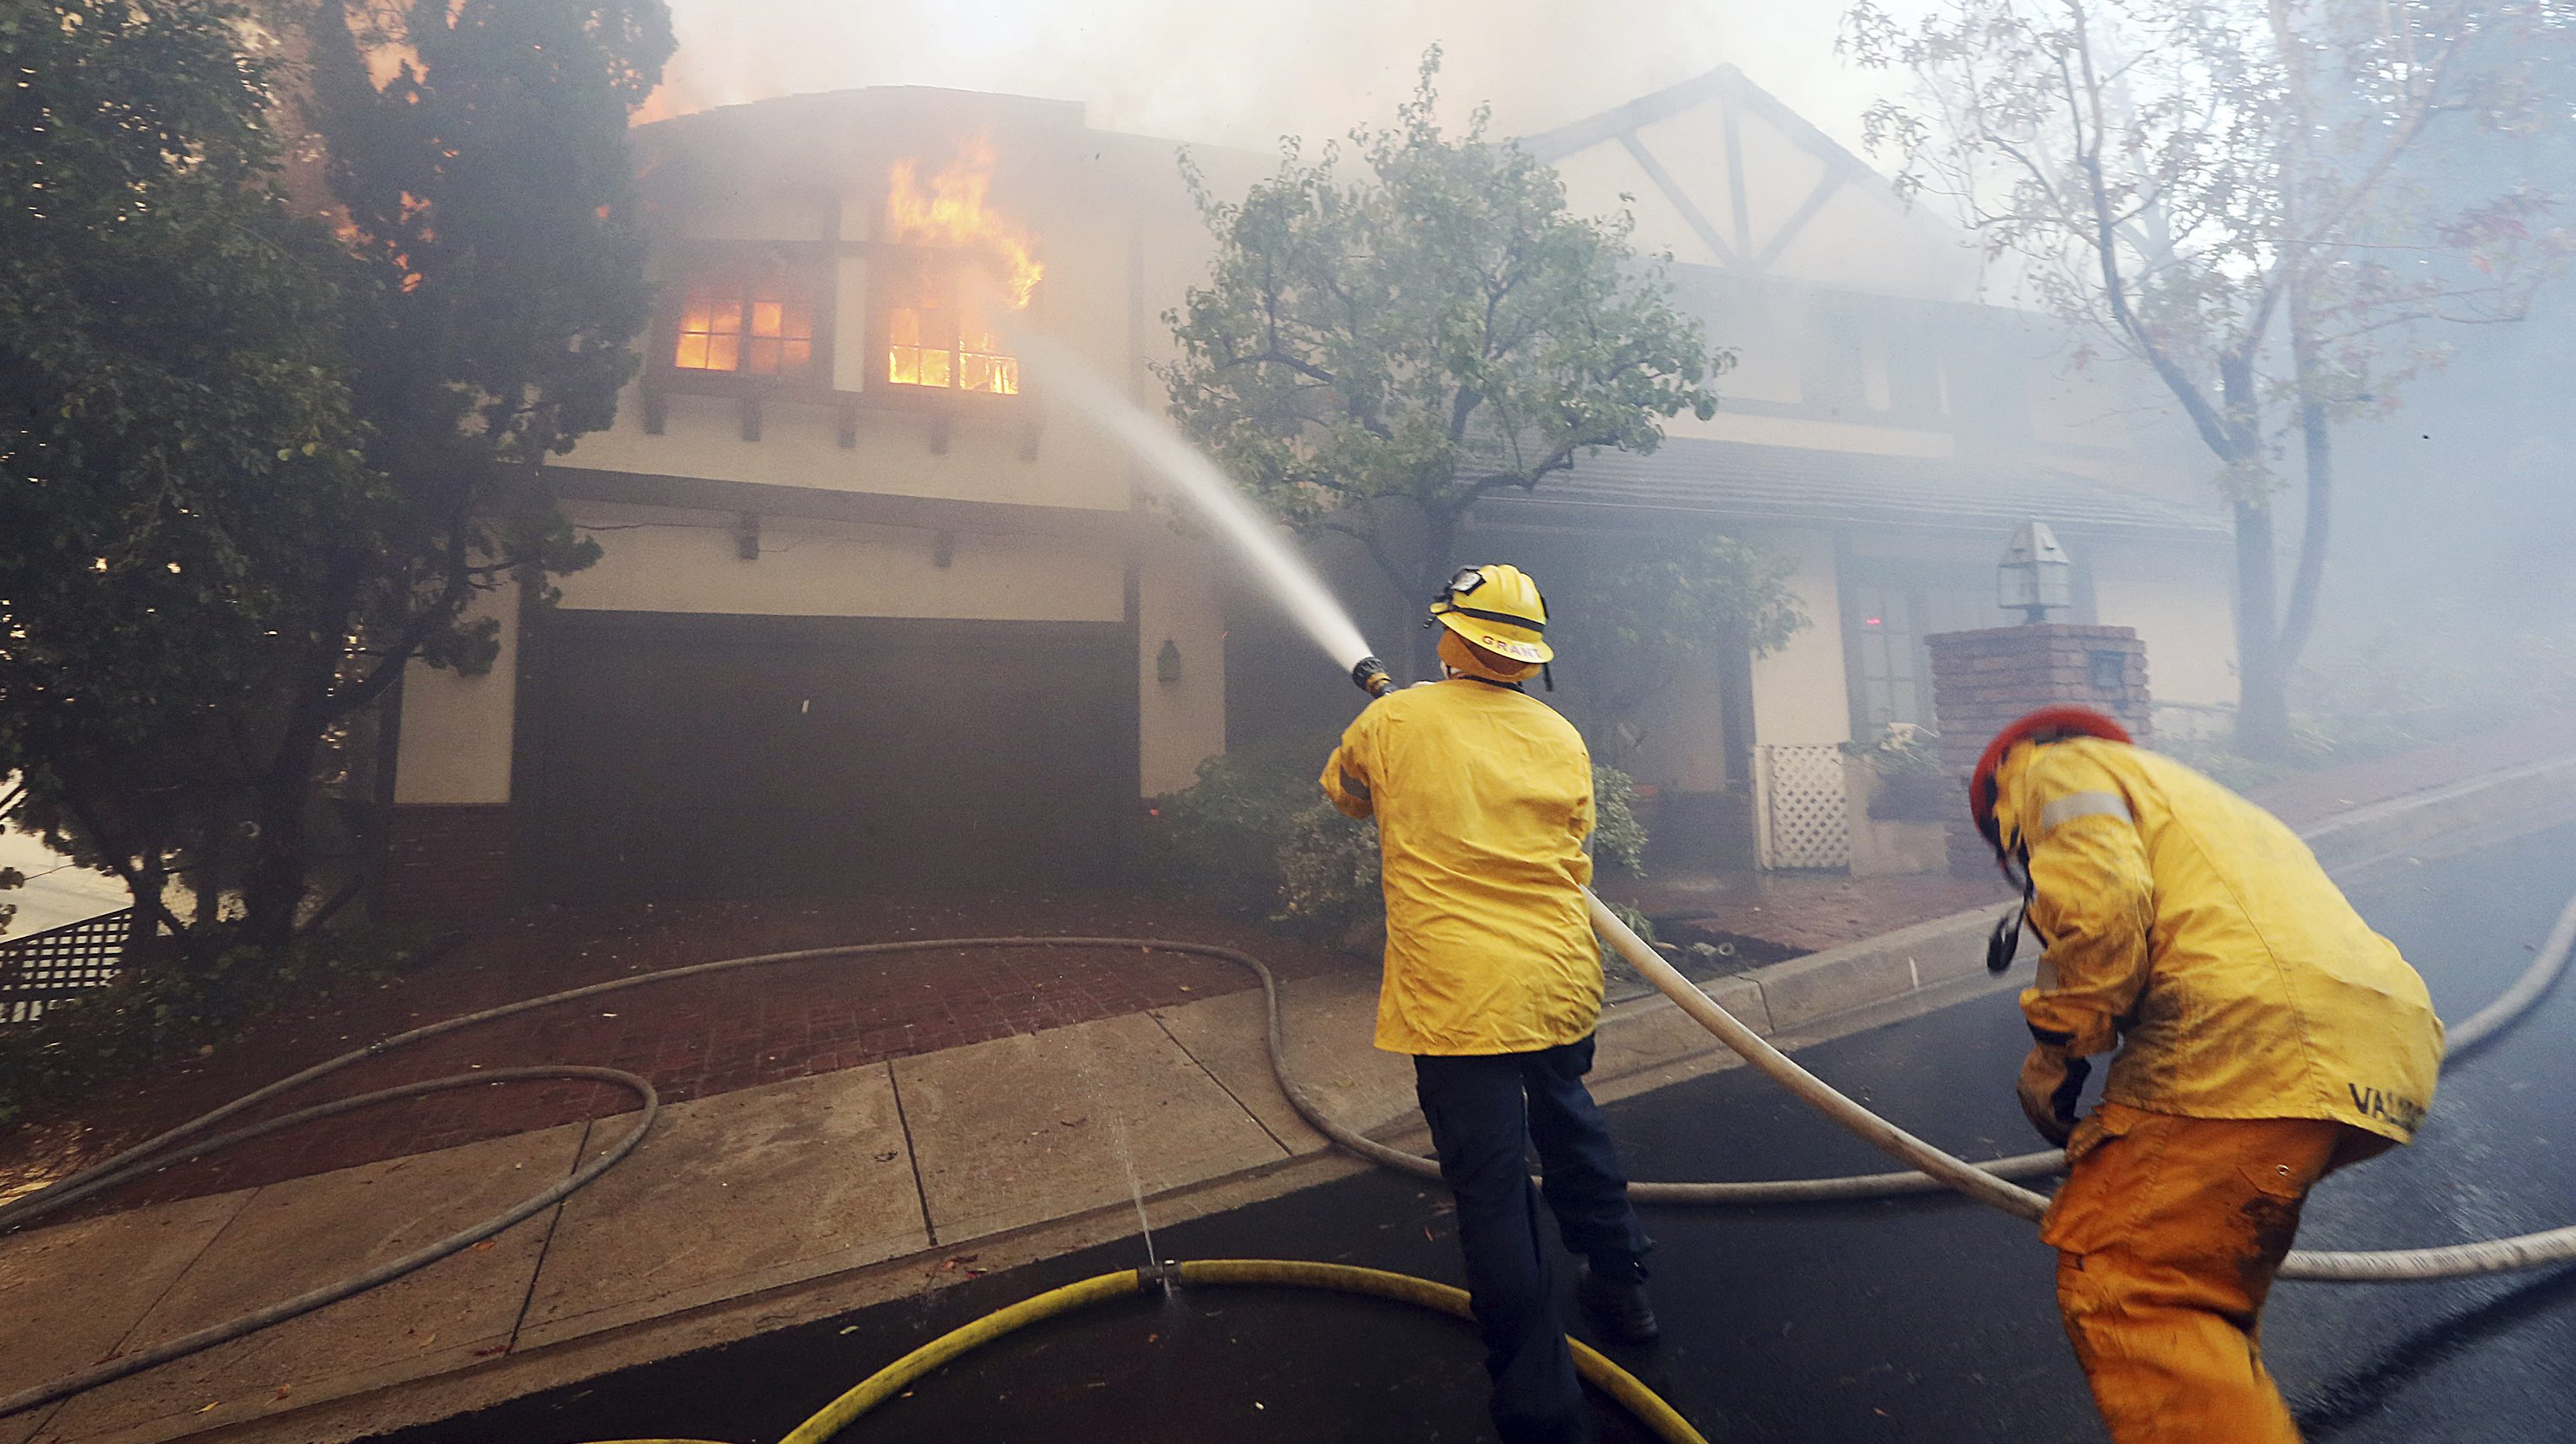 Los Angeles firefighters battle to contain flames to a burning home